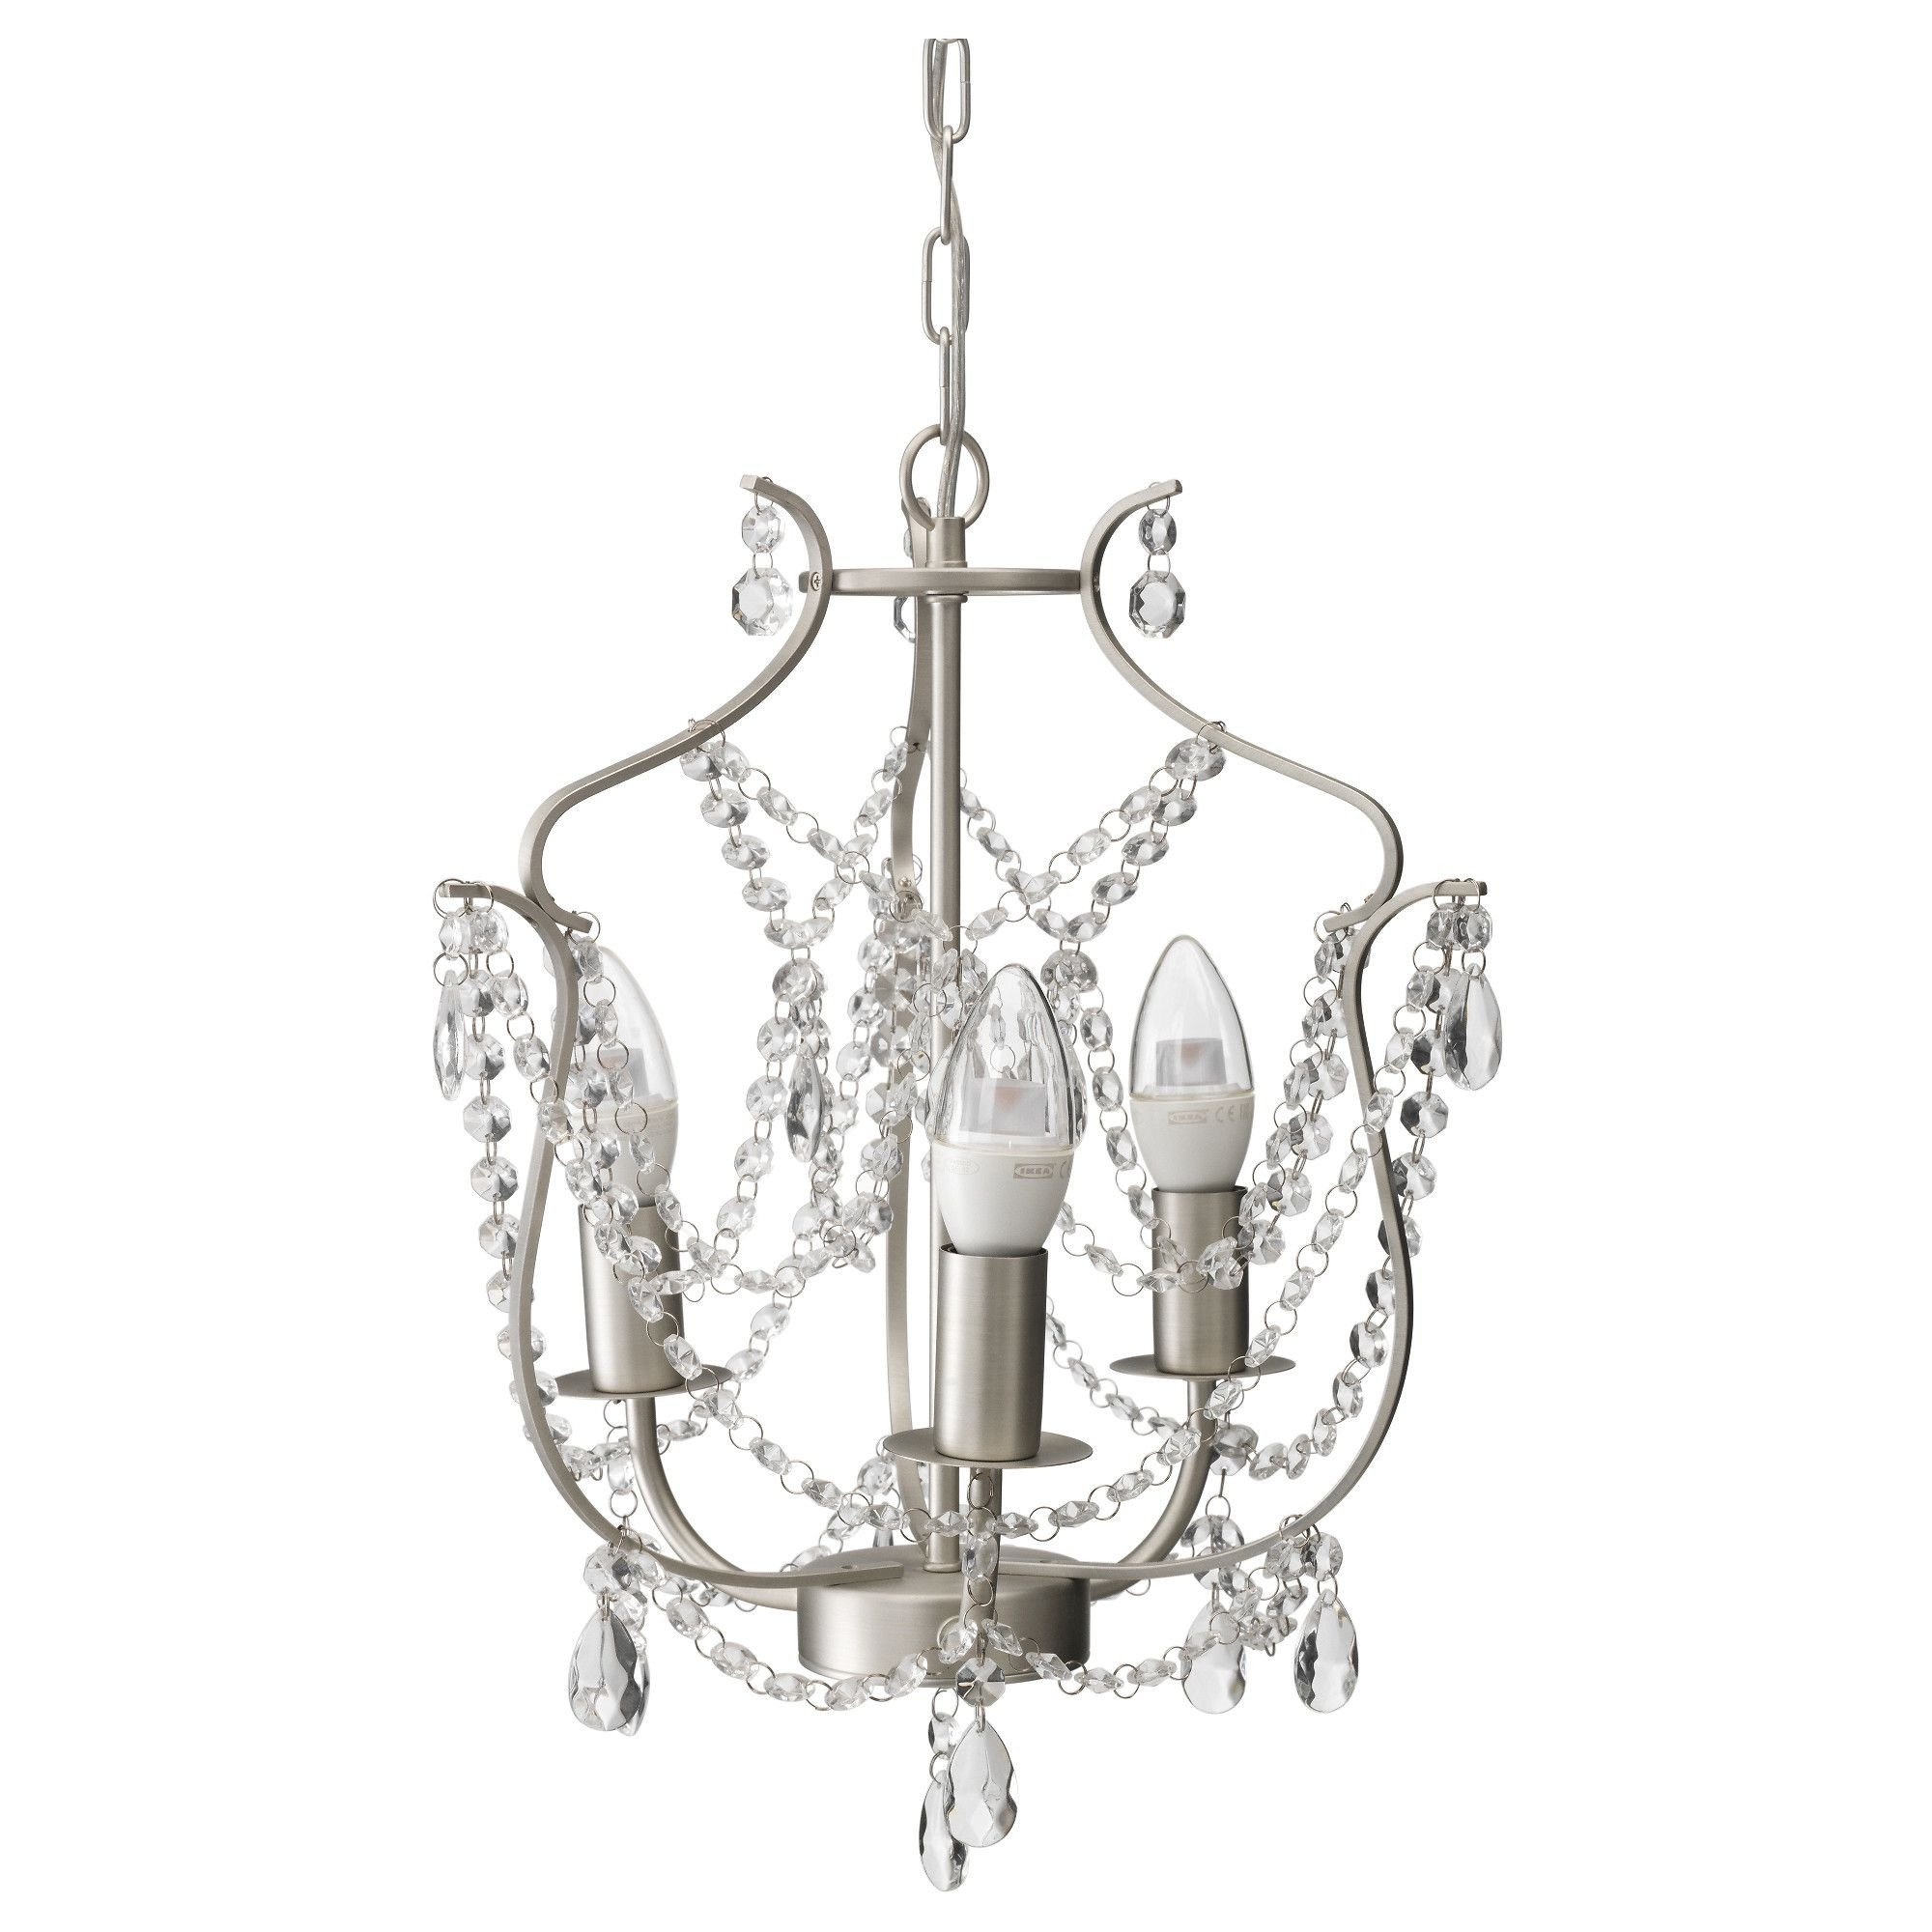 Chandelier for Girls Bedroom Beautiful Kristaller Chandelier 3 Armed Silver Color Glass